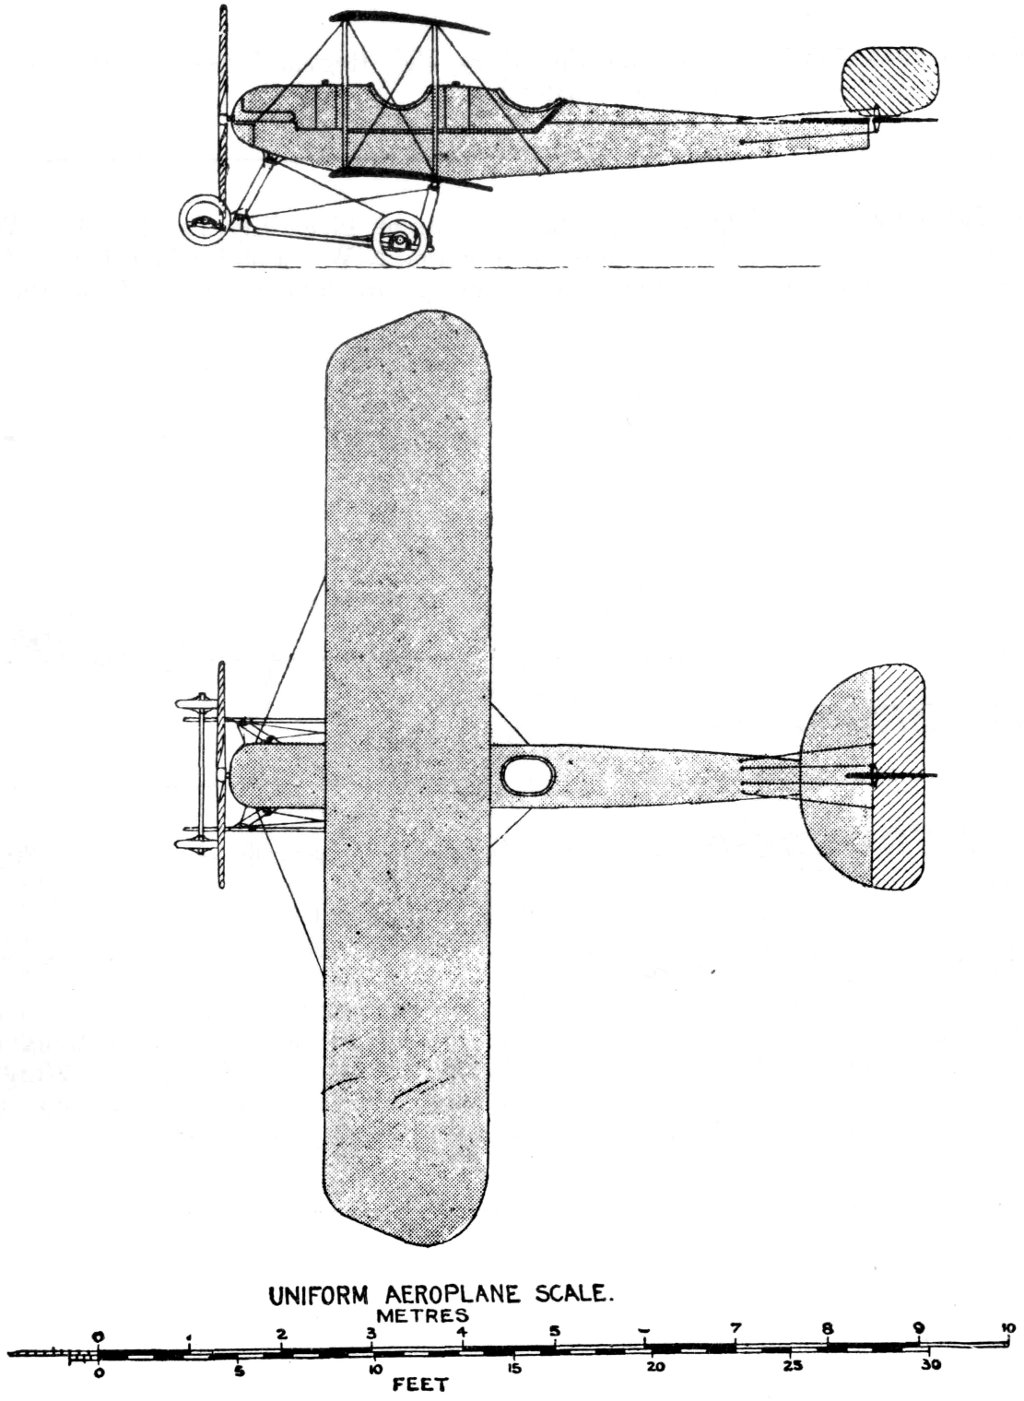 The Project Gutenberg eBook of Jane\'s All The World\'s Aircraft 1913 ...